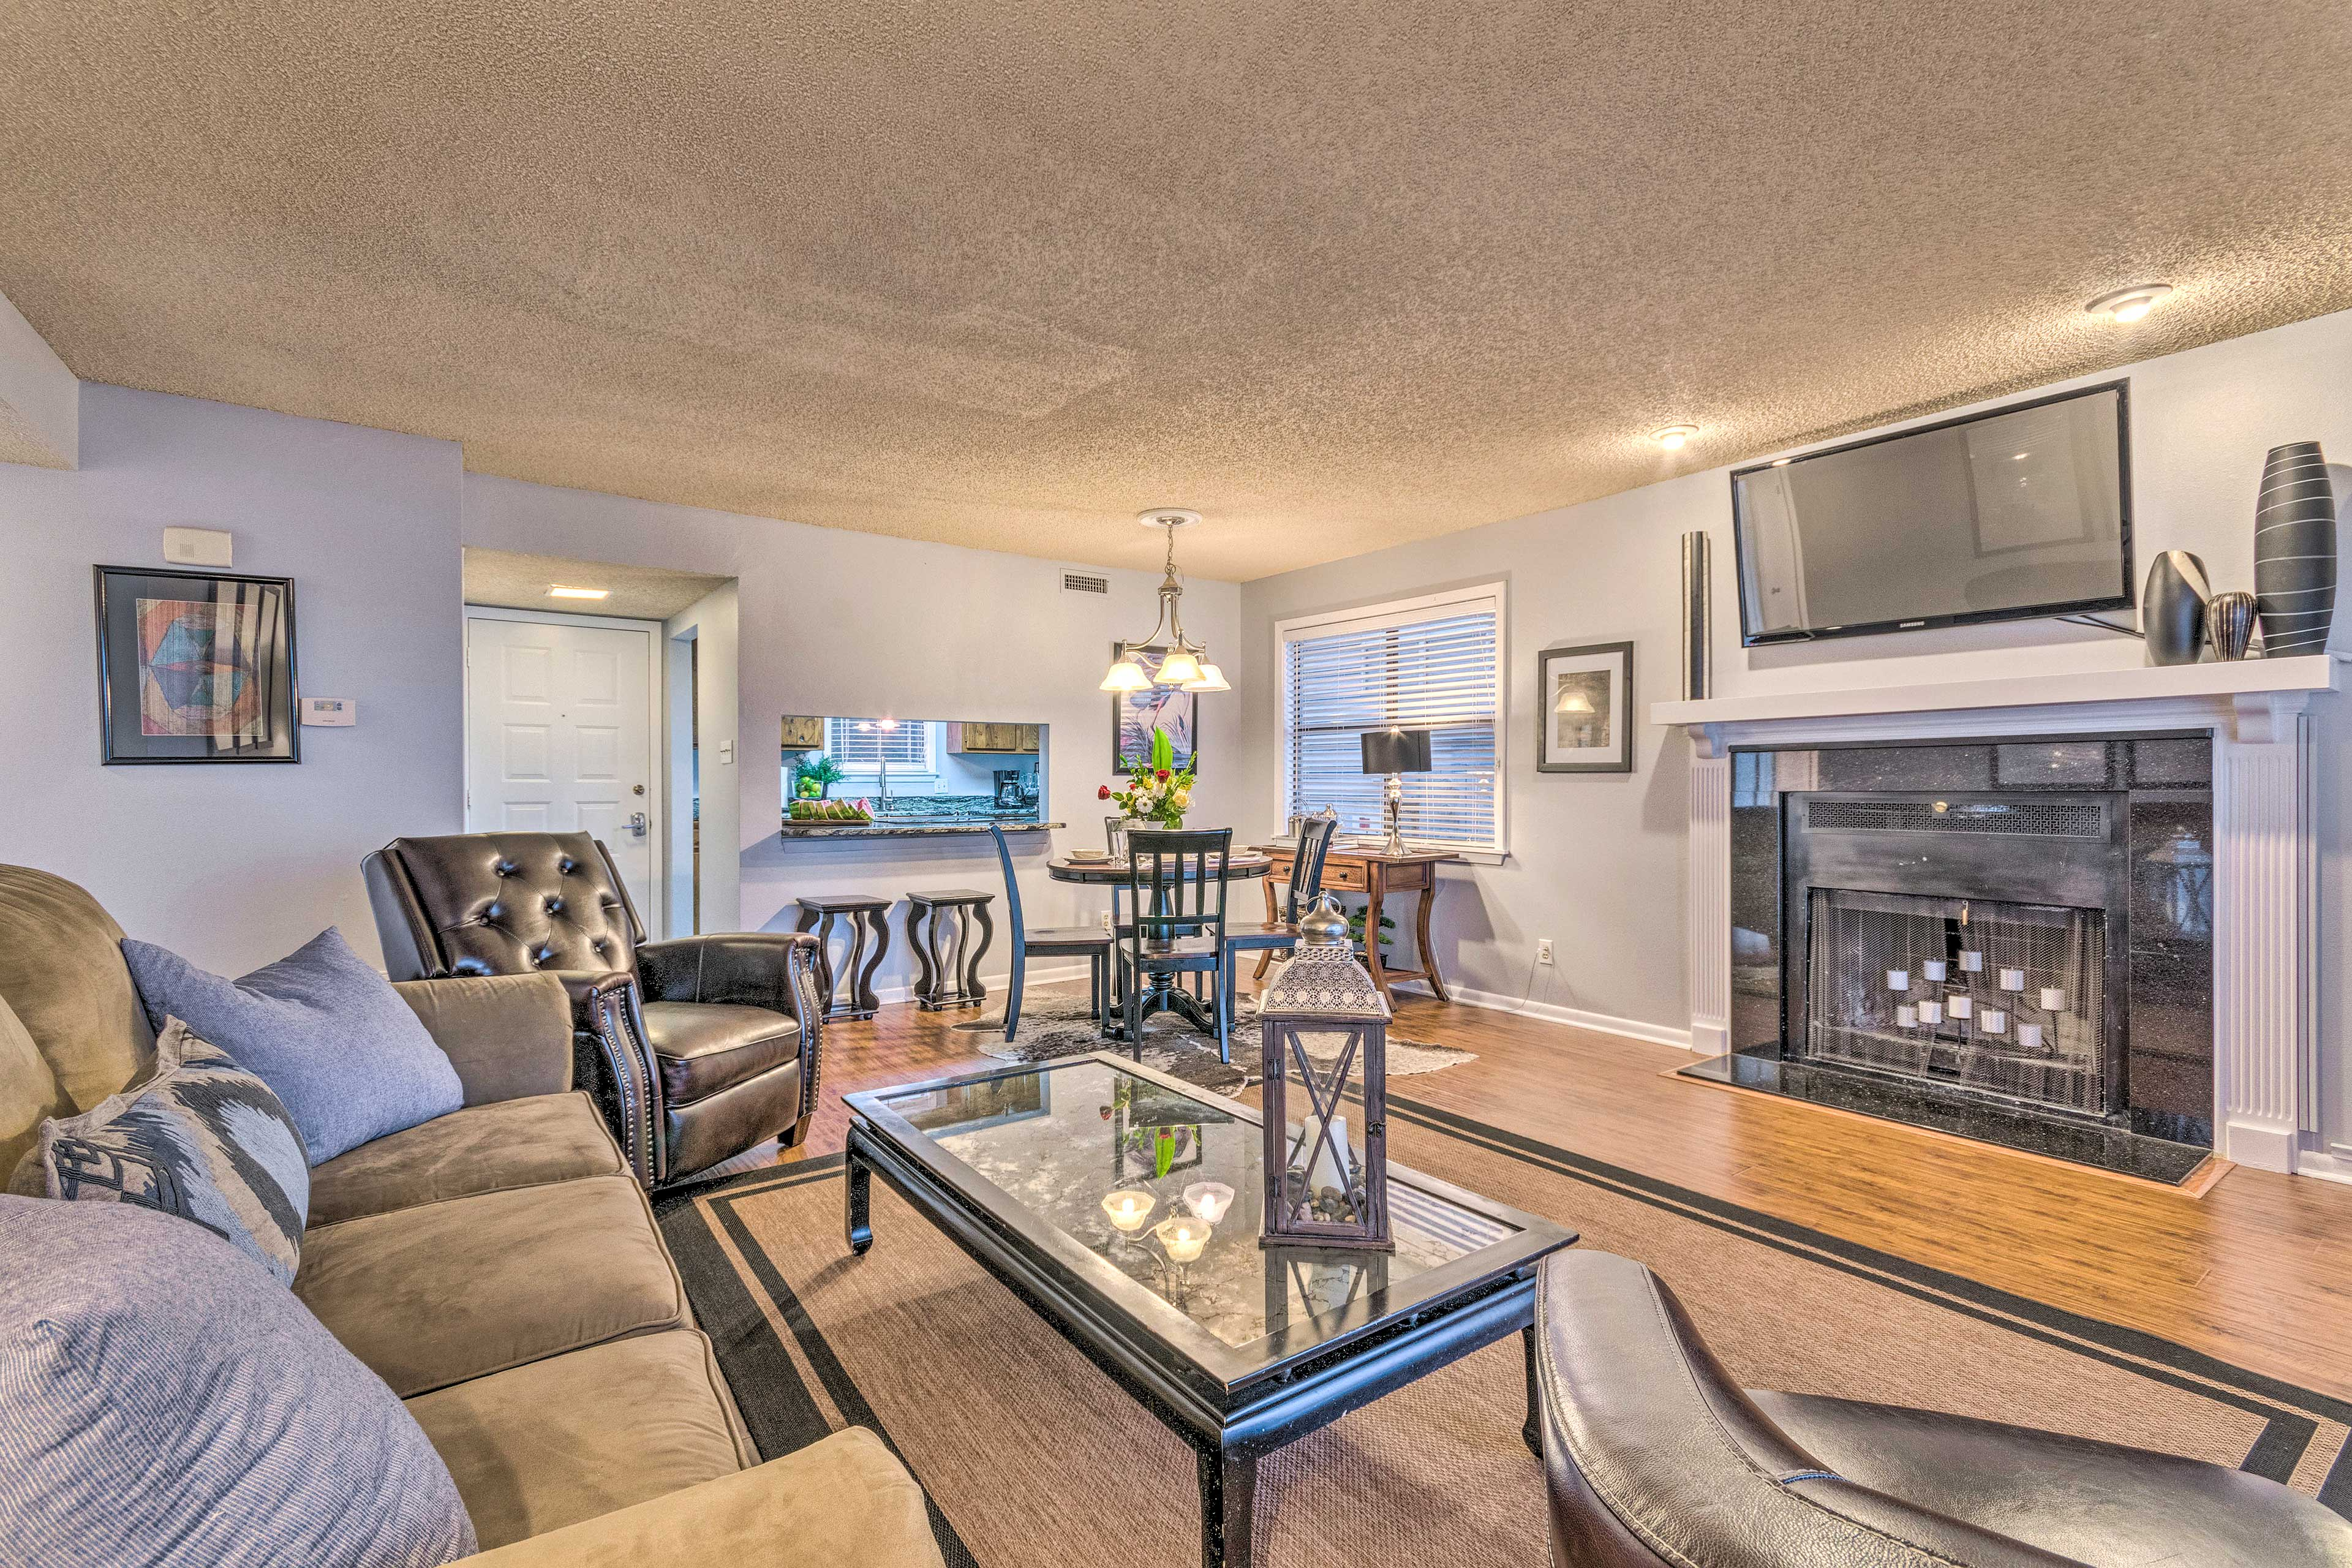 Decompress with a movie night in this spacious living area!